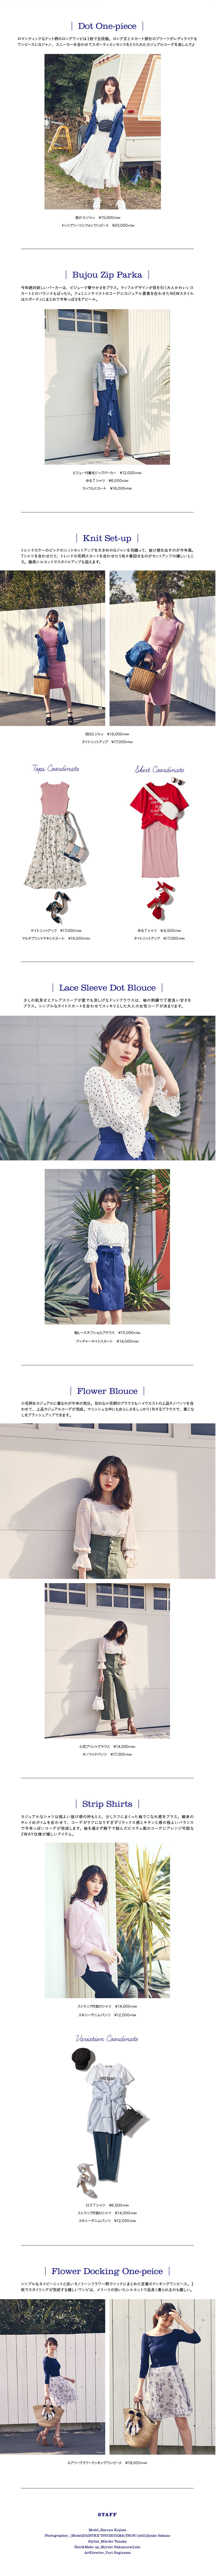 WEB ALBUM vol.28 - Rirandture × 小嶋陽菜